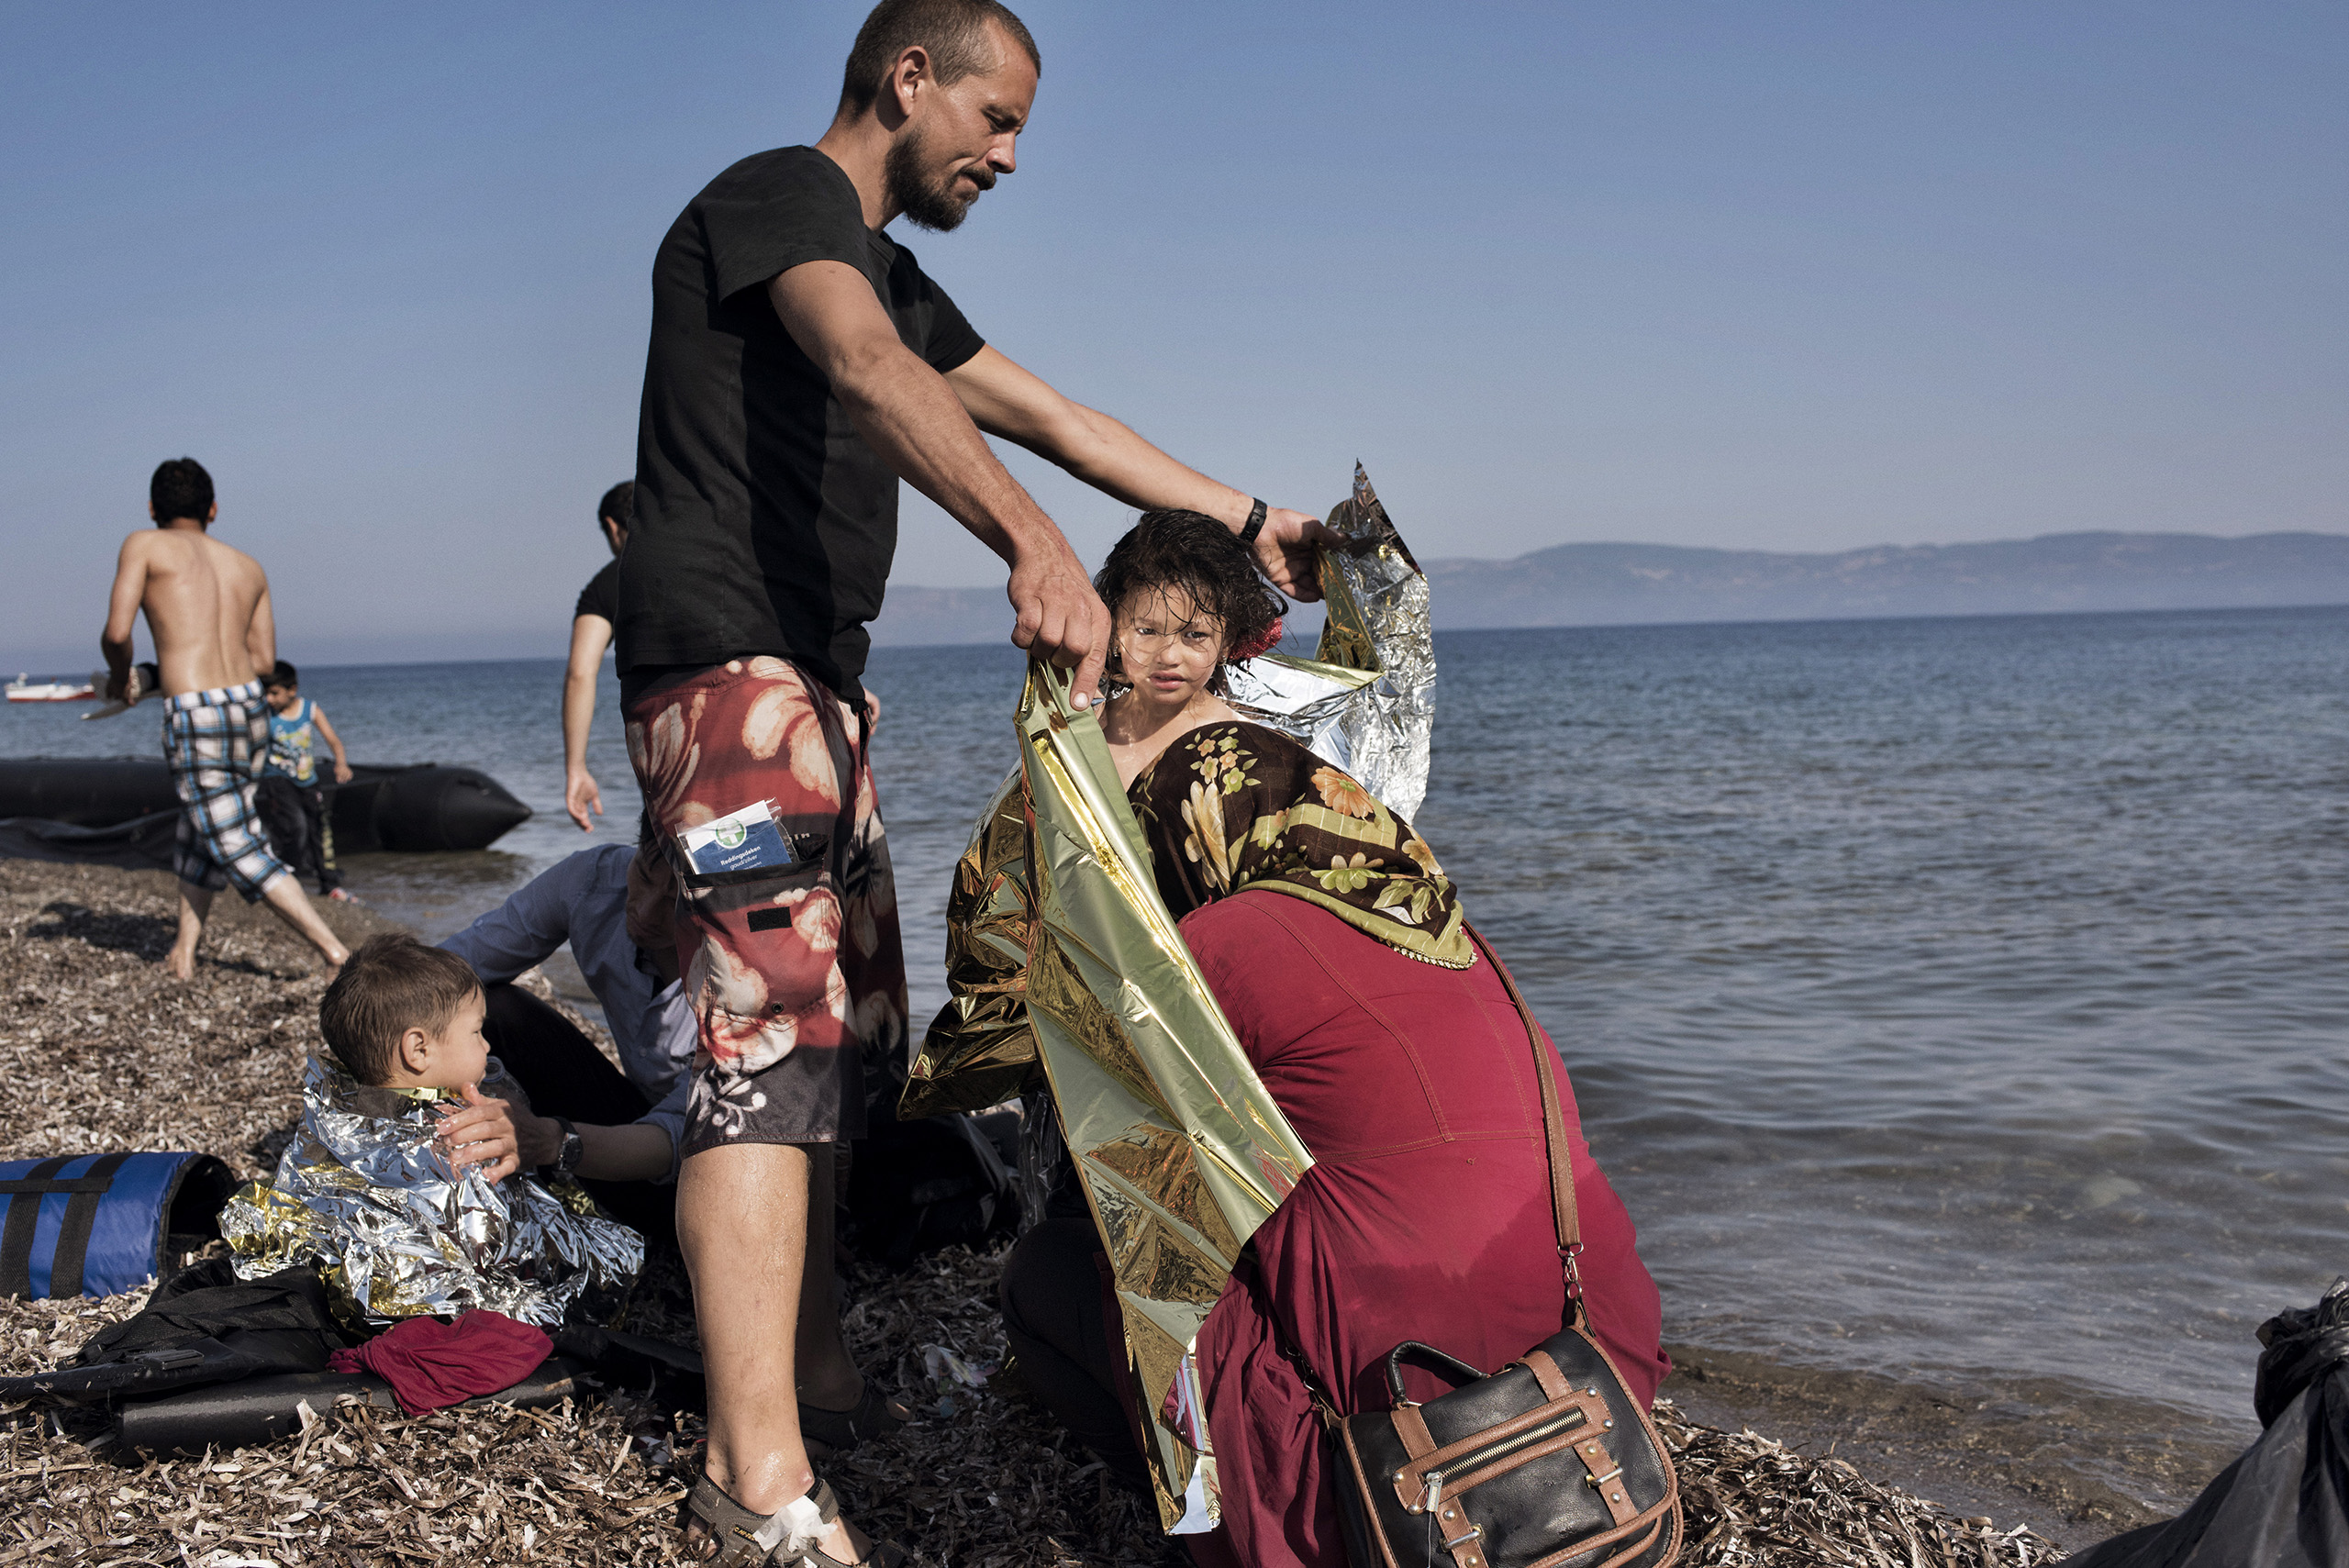 A German volunteer helps a family from Afghanistan that has just come ashore from Turkey on the Greek island of Lesbos, the first piece of European land they reached on their journey to claim asylum in Germany and other wealthy European nations.